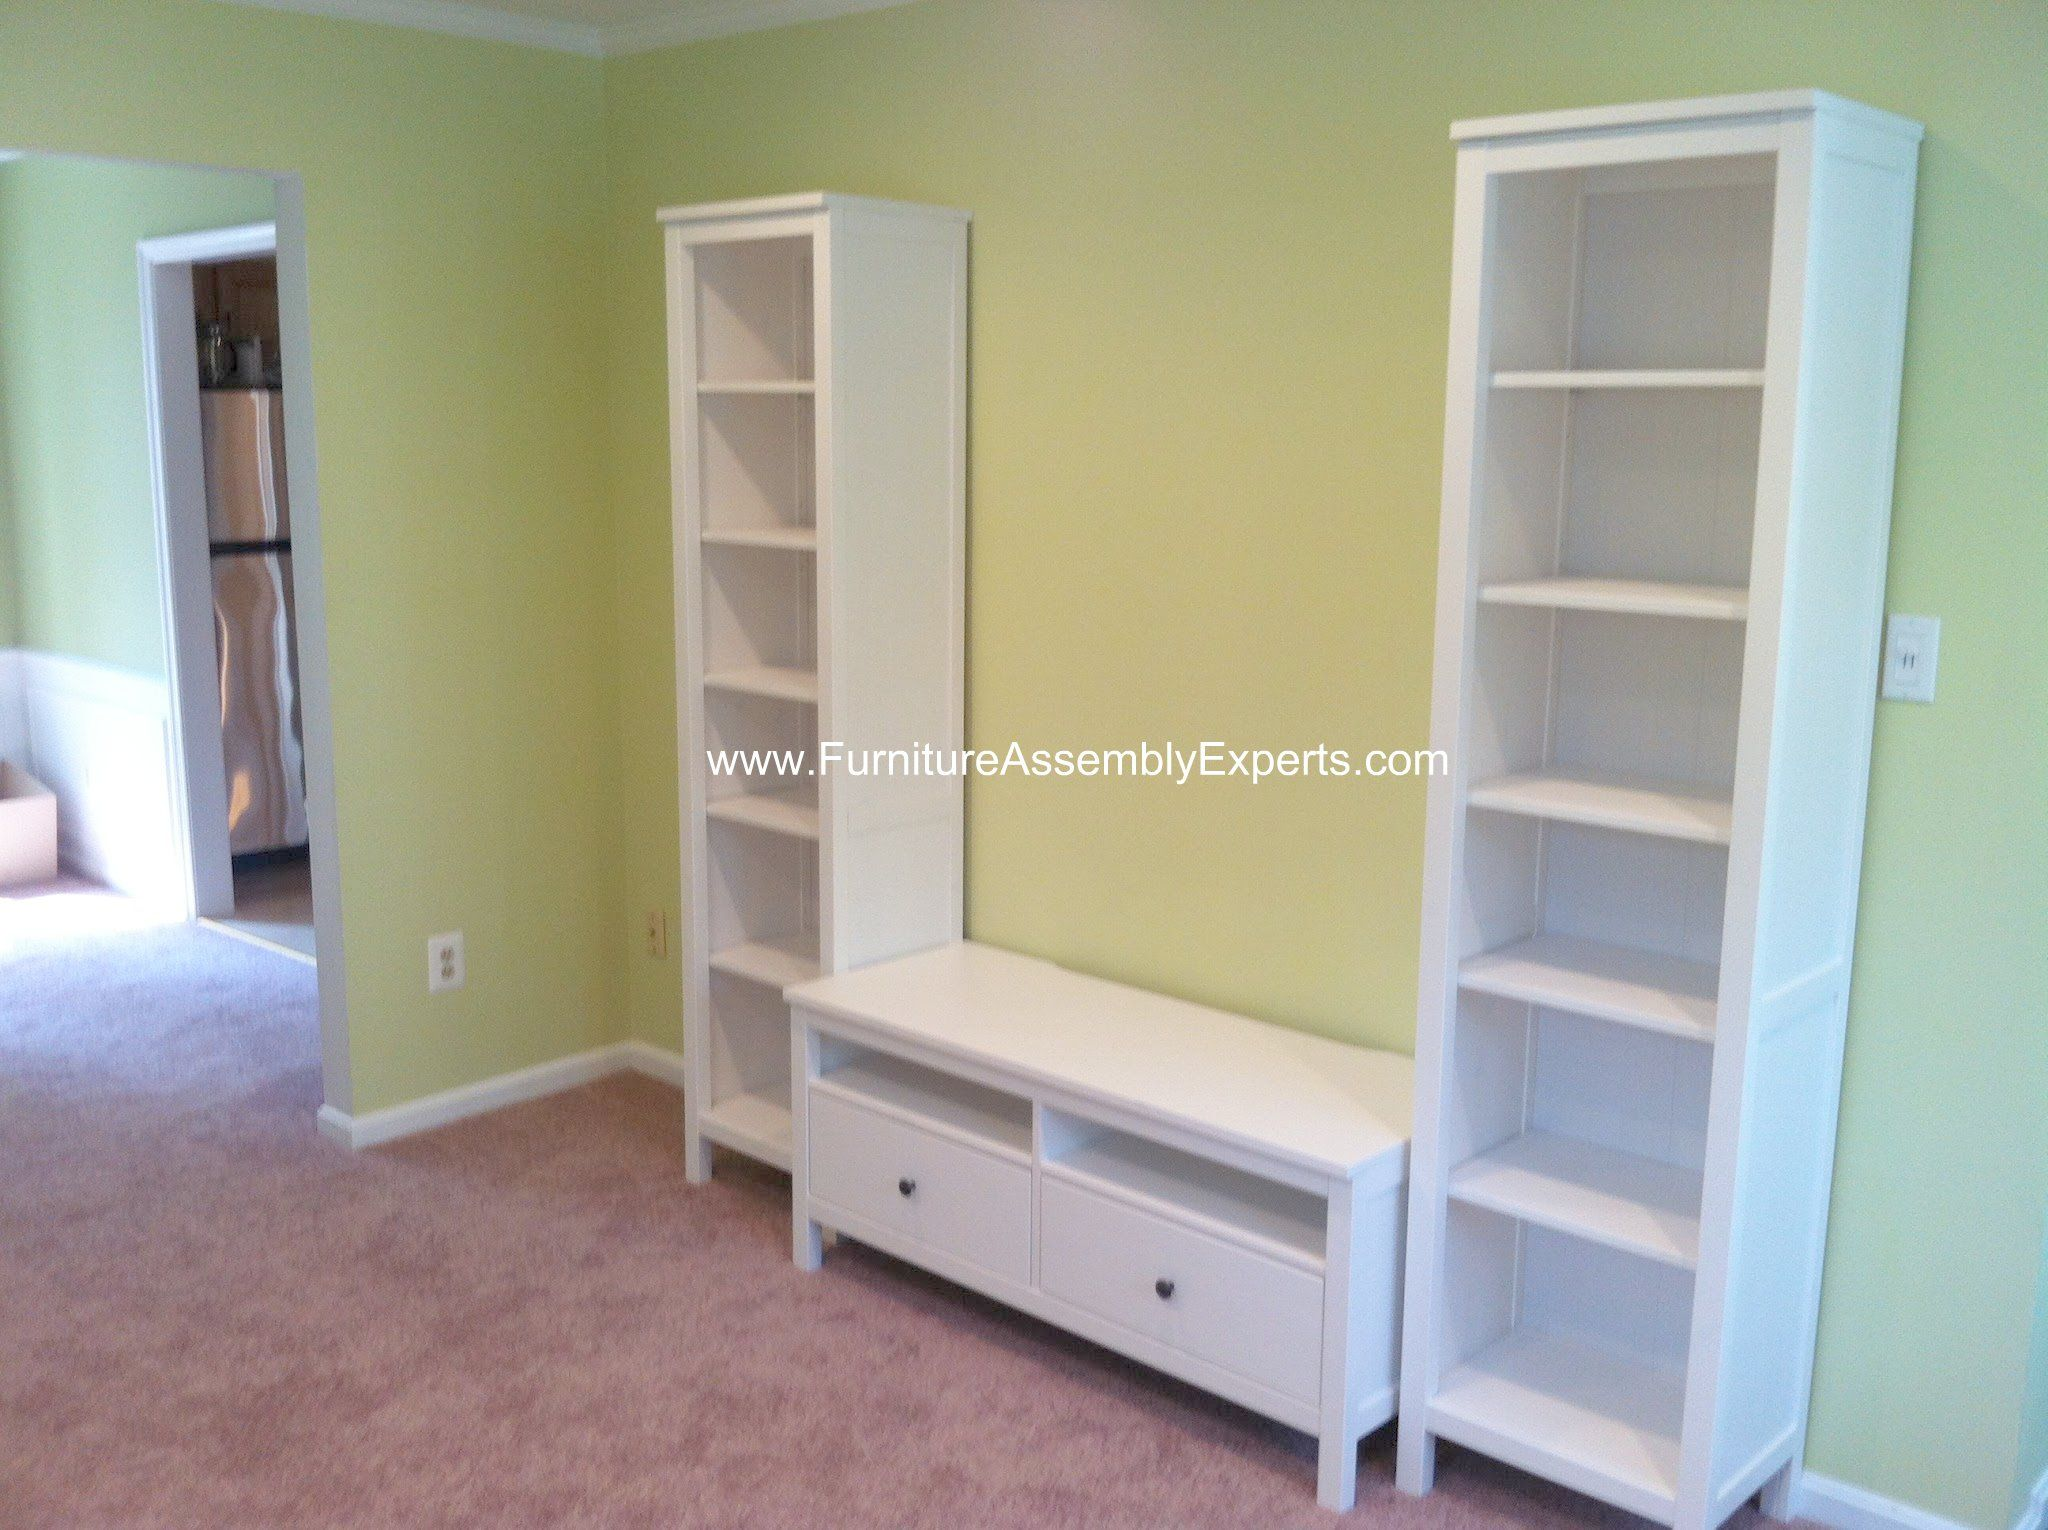 ikea hemnes tv stand and bookcases assembled in chevy chase md by furniture assembly experts llc. Black Bedroom Furniture Sets. Home Design Ideas